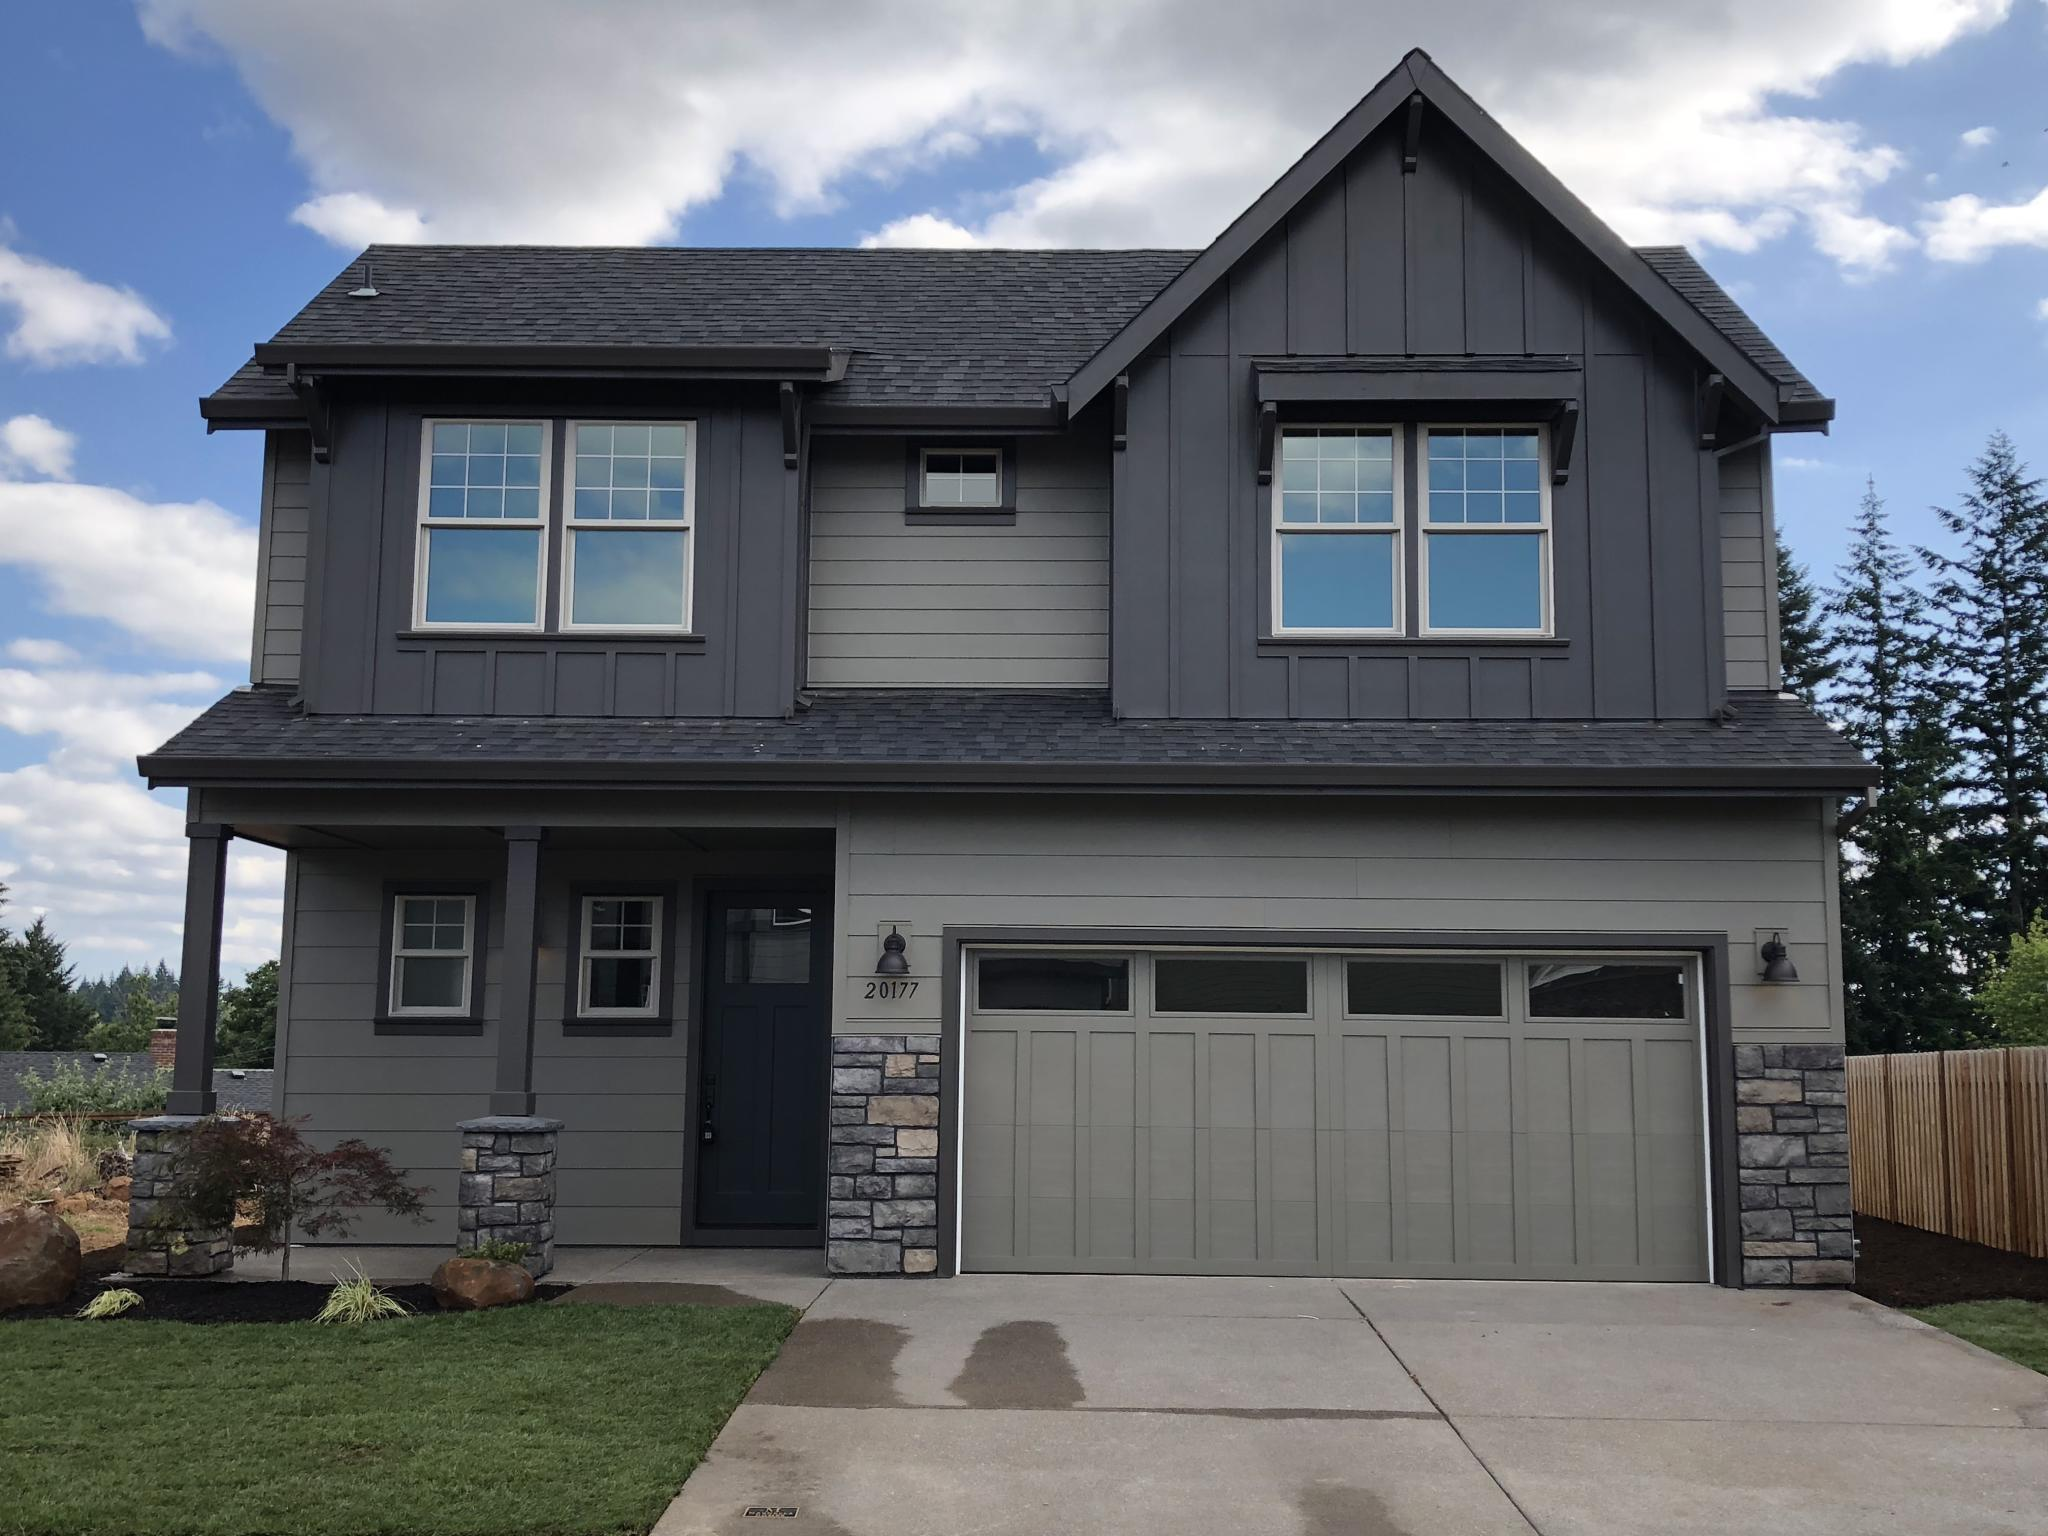 Kinslie Heights By Marnella New Homes For Sale Oregon City Or 3